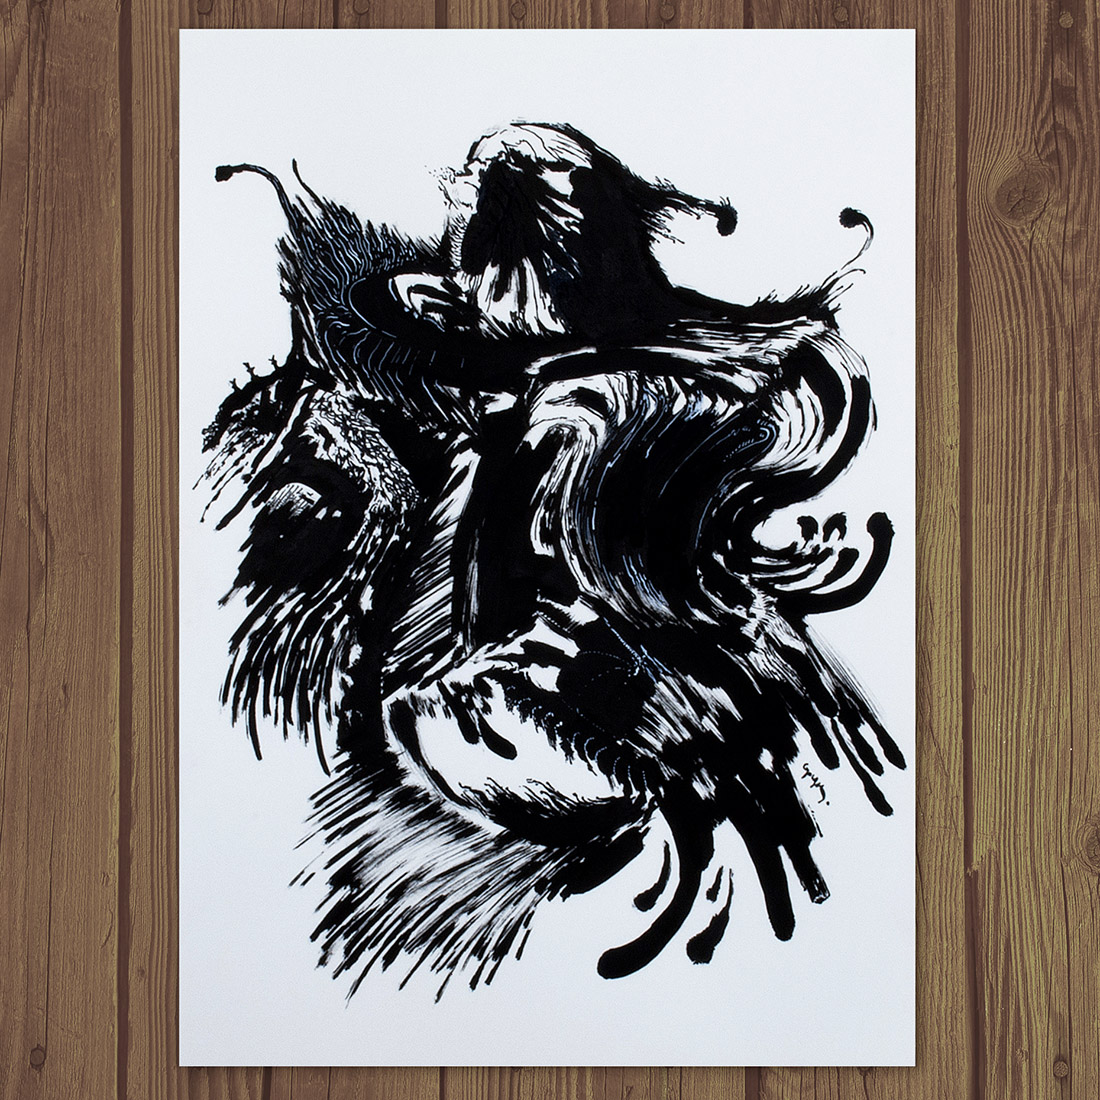 Photo of Kostas Gogas' Artwork 'Black Rooster', an abstract black drawing on paper, resembling a Rooster.